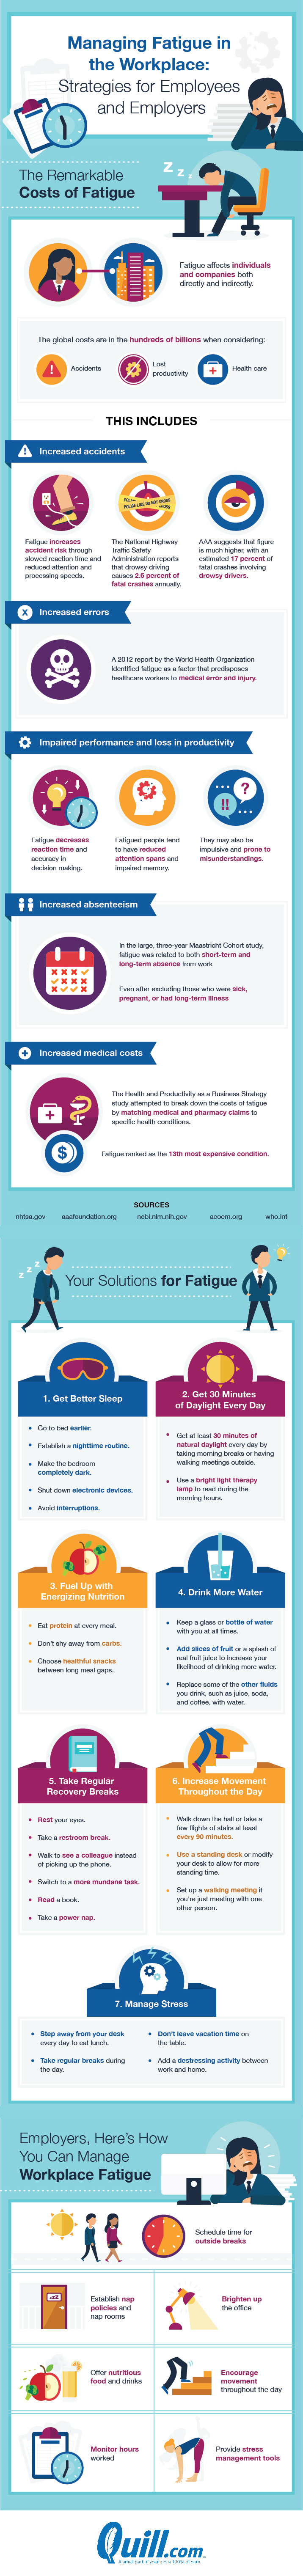 Managing Fatigue in the Workplace: Strategies for Employees and Employers